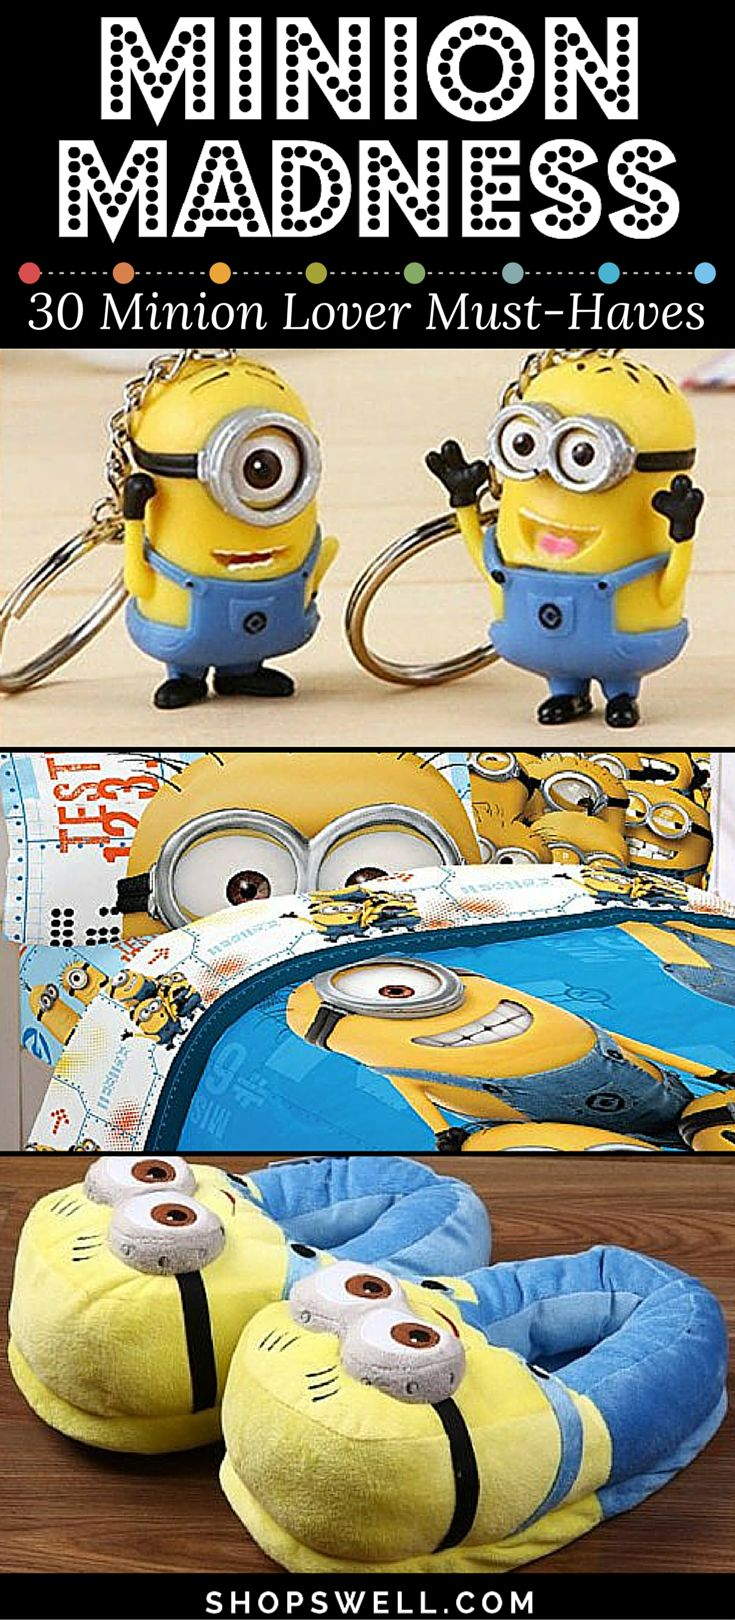 Minion Madness! 30 Cool Minion-Related Products